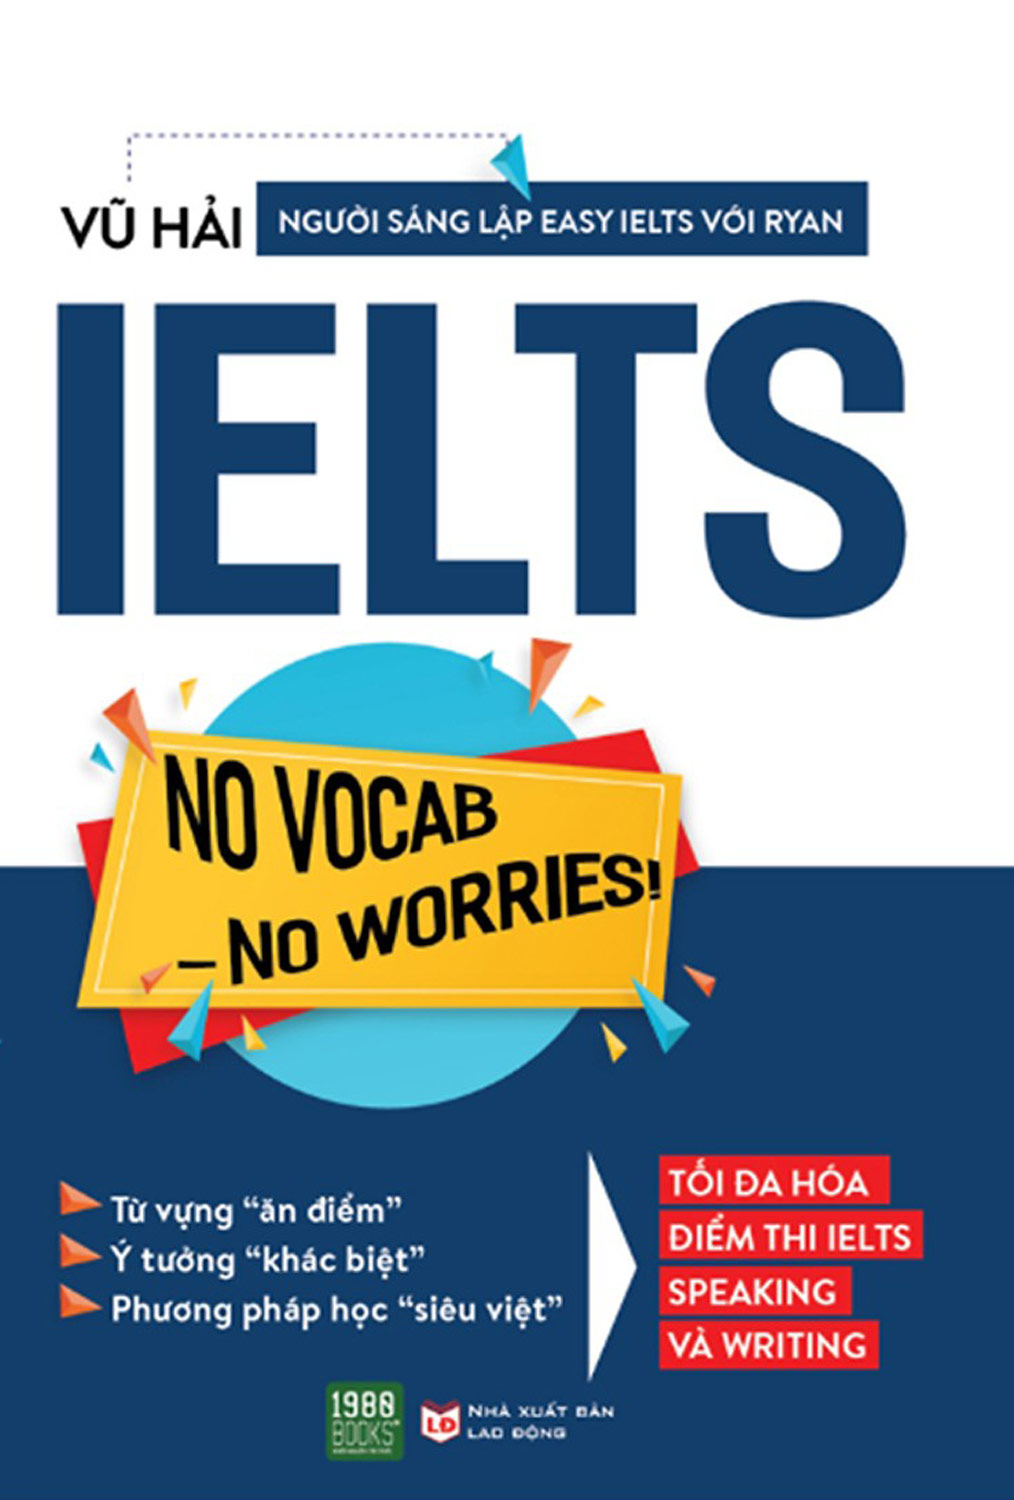 No Vocab – No Worries